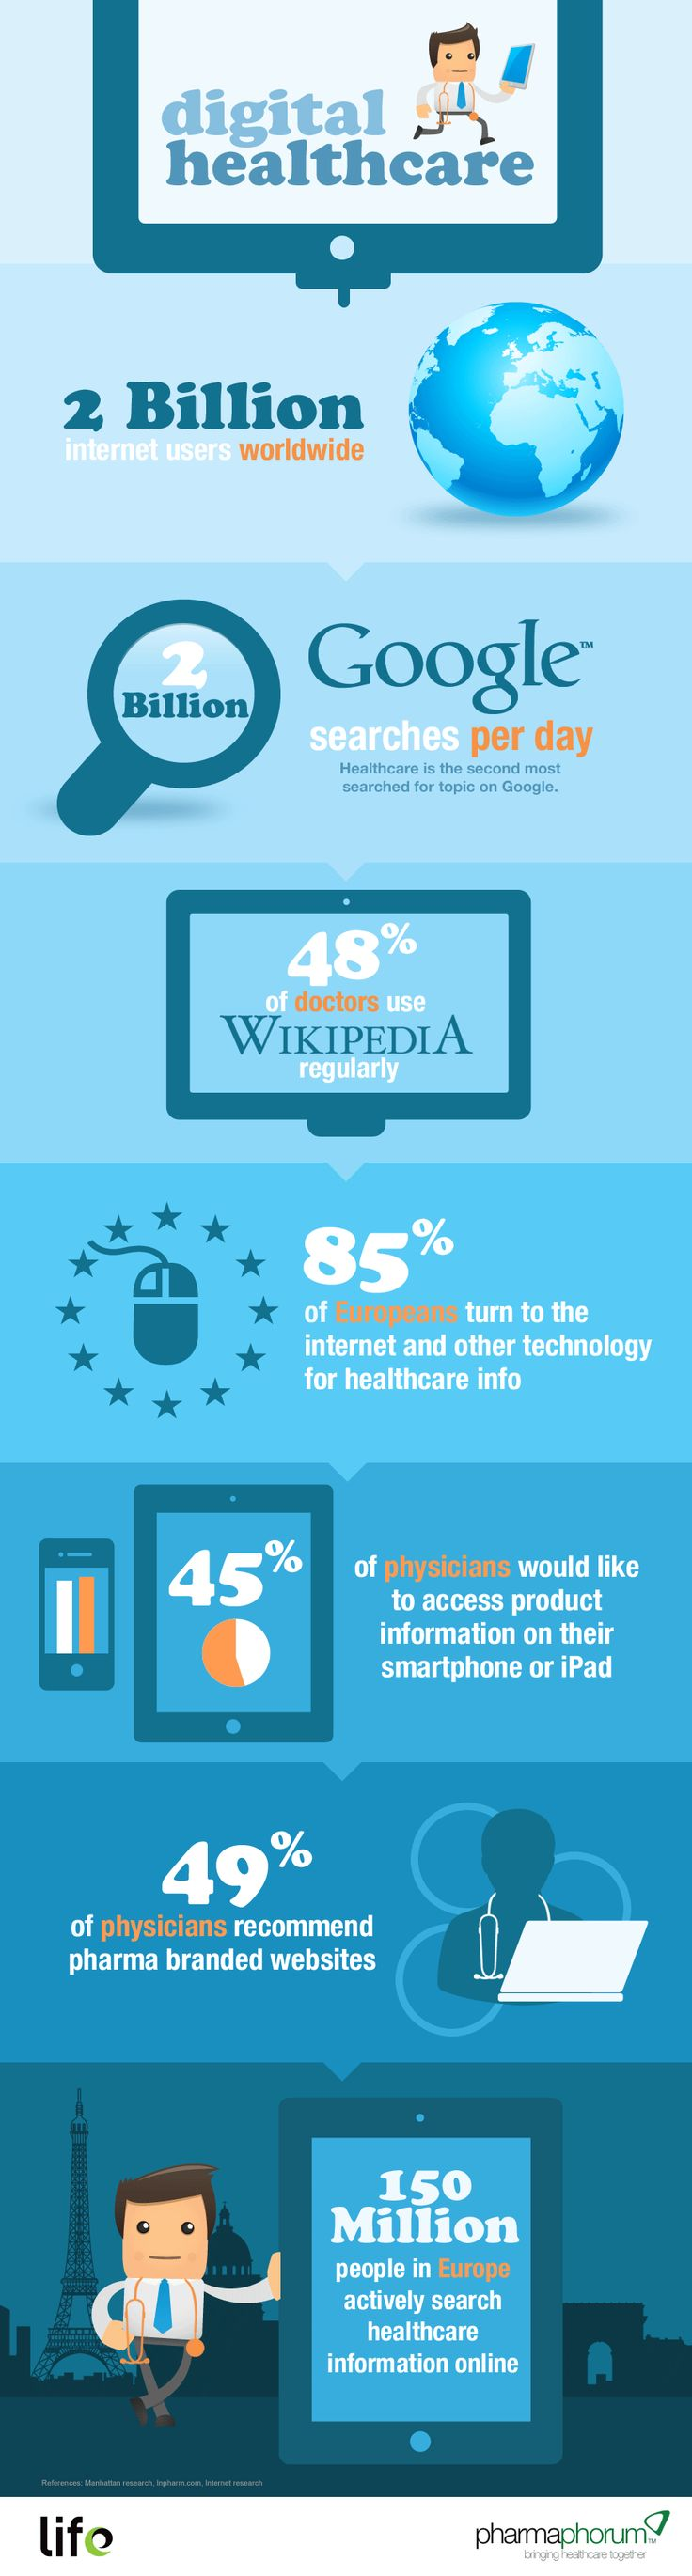 Digital healthcare infographic :)